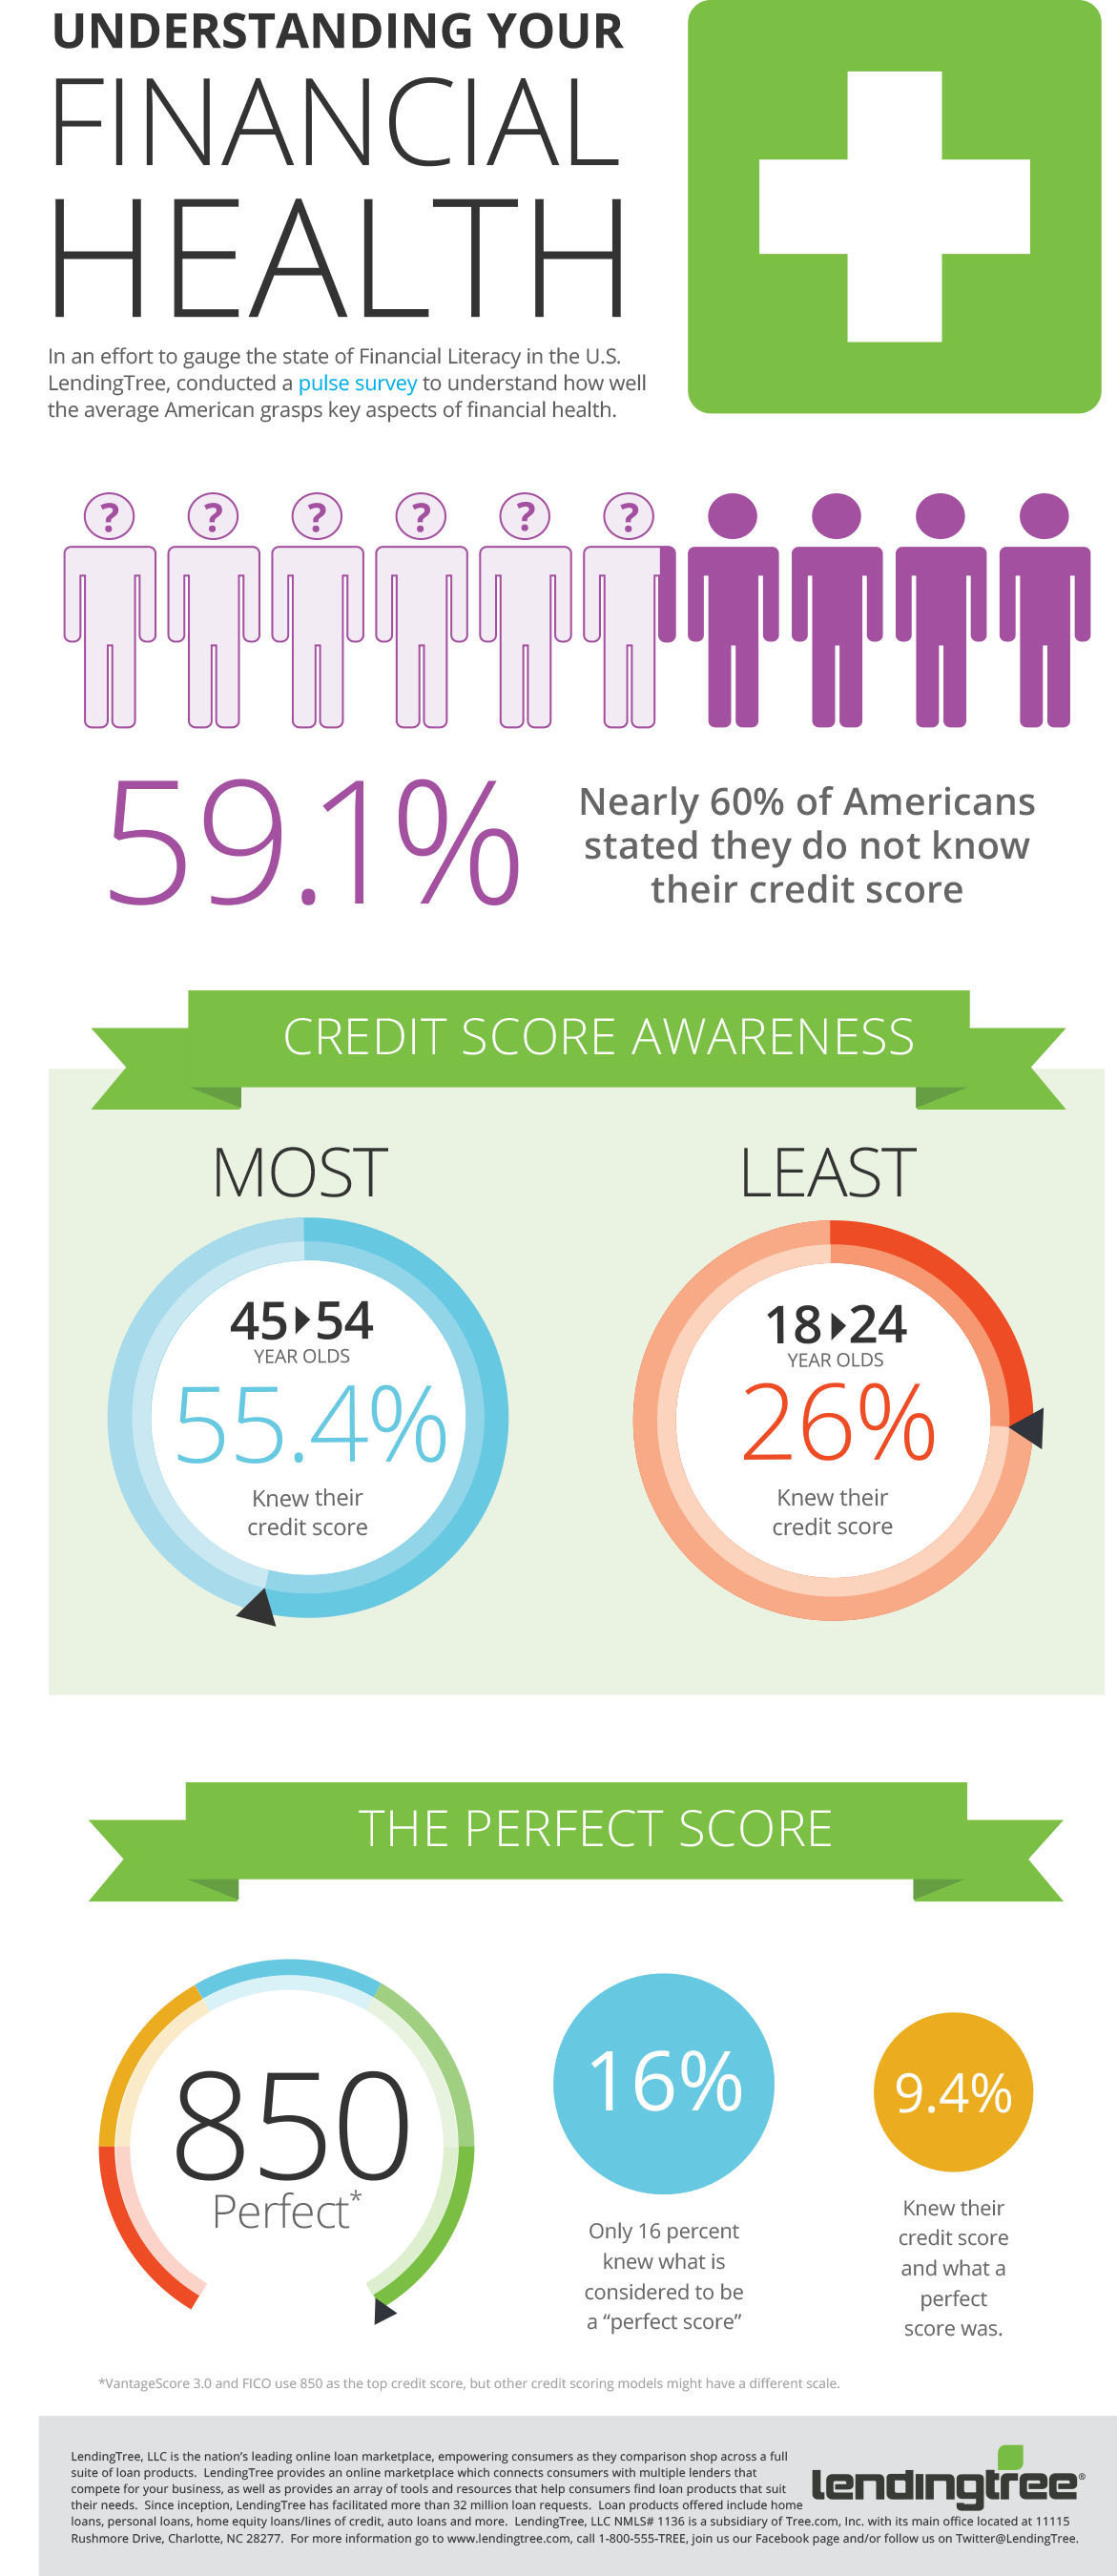 LendingTree Survey Finds Nearly 60% of Americans Don't Know Their Credit Scores; Most consumers lack critical credit health awareness